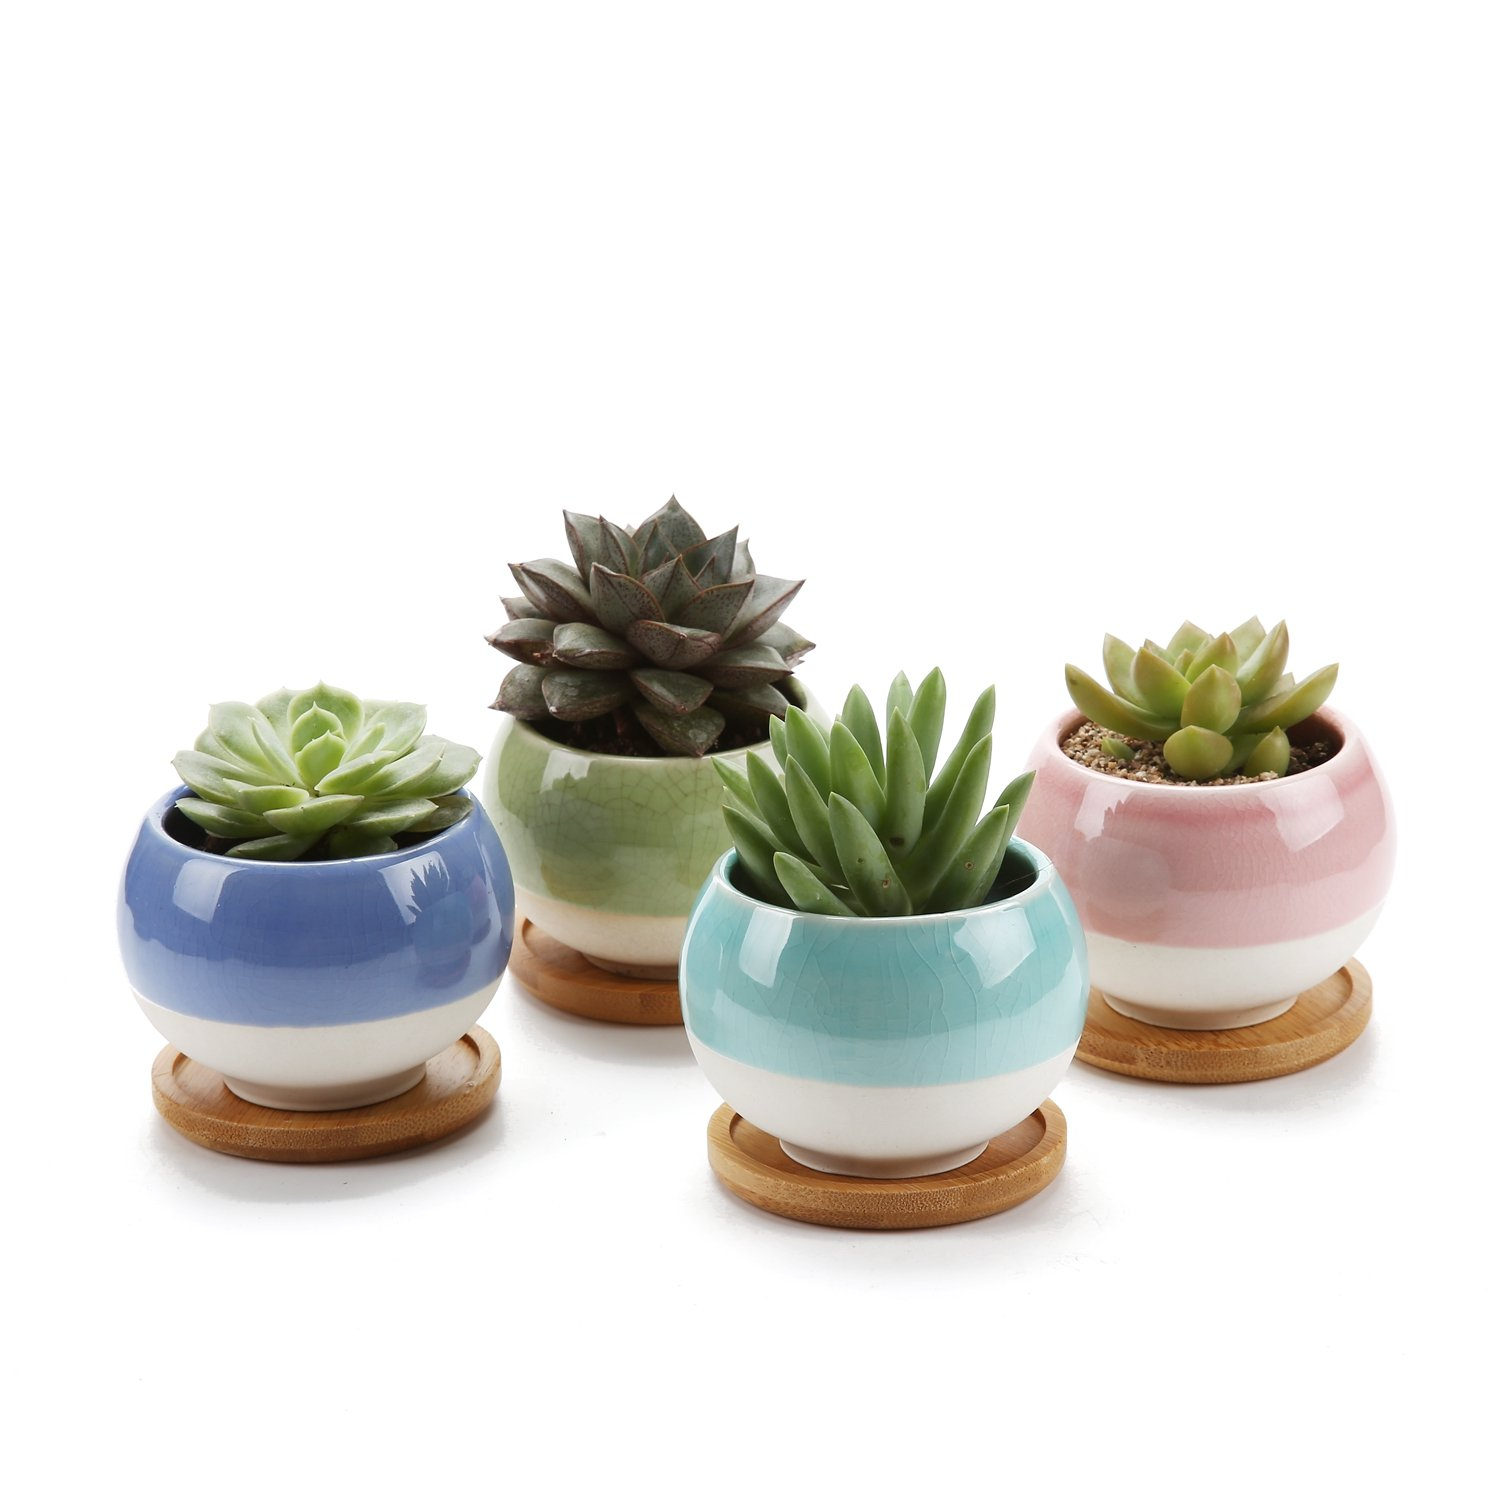 T4U 3'' Succulent Planters Pots Ceramic, Ball Shape Drainage Cactus Pots Window Boxes with Bamboo Tray, Set of 4 by T4U